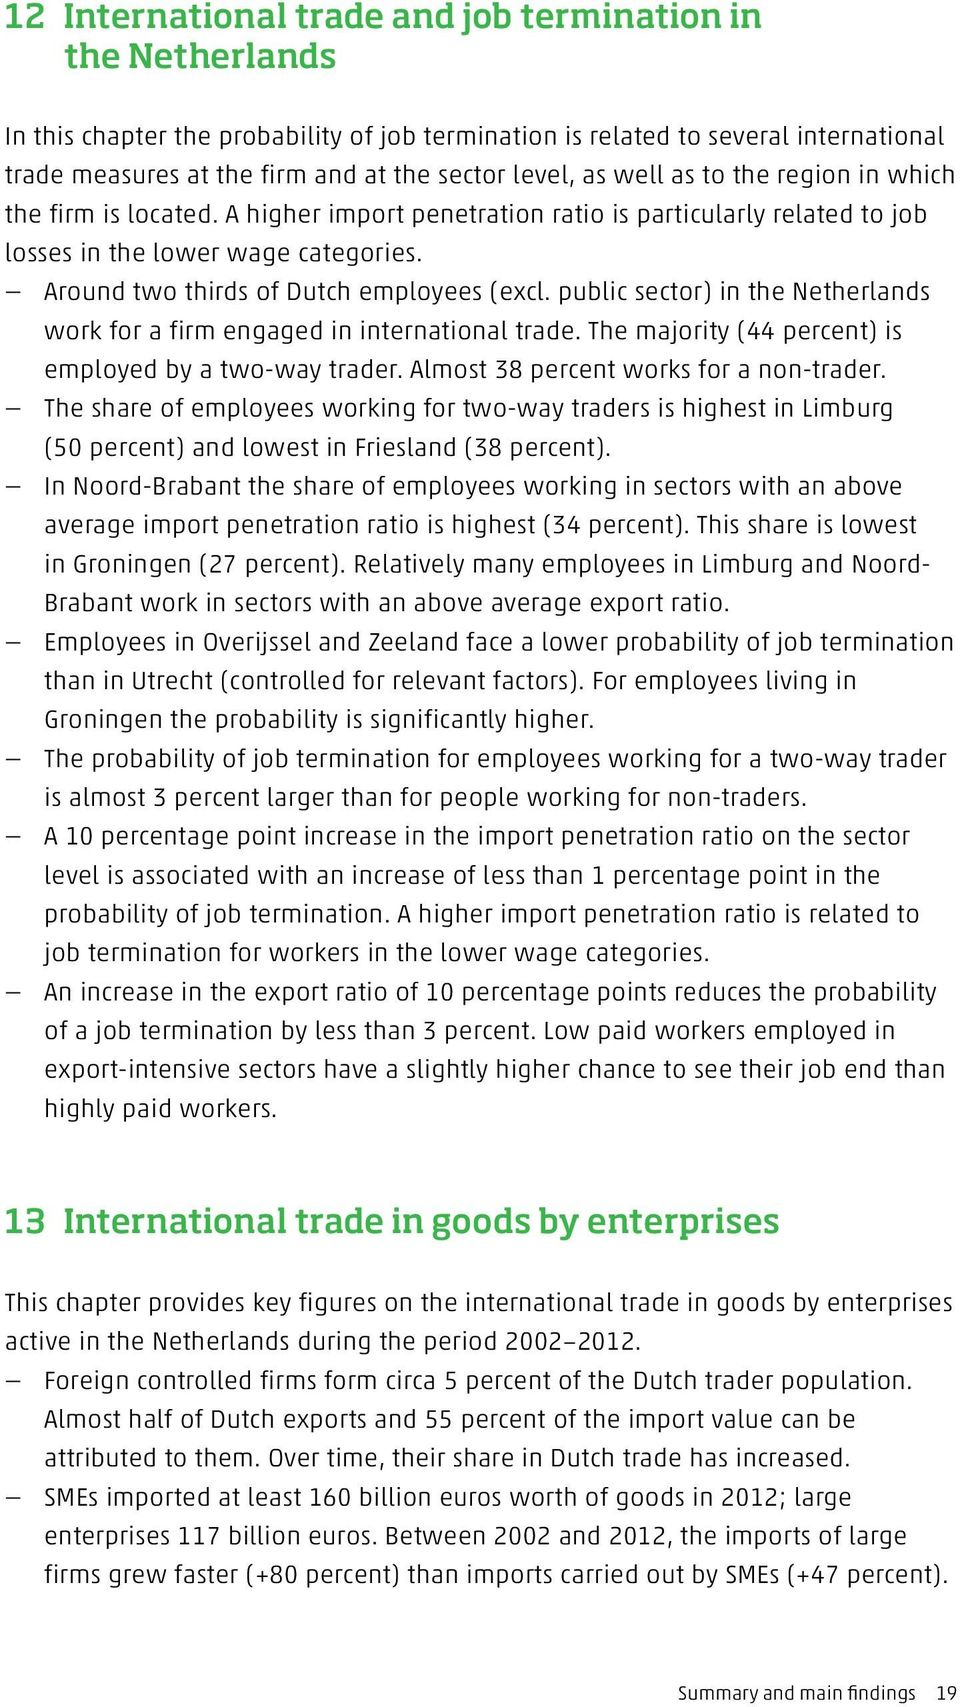 Around two thirds of Dutch employees (excl. public sector) in the Netherlands work for a firm engaged in international trade. The majority (44 percent) is employed by a two-way trader.